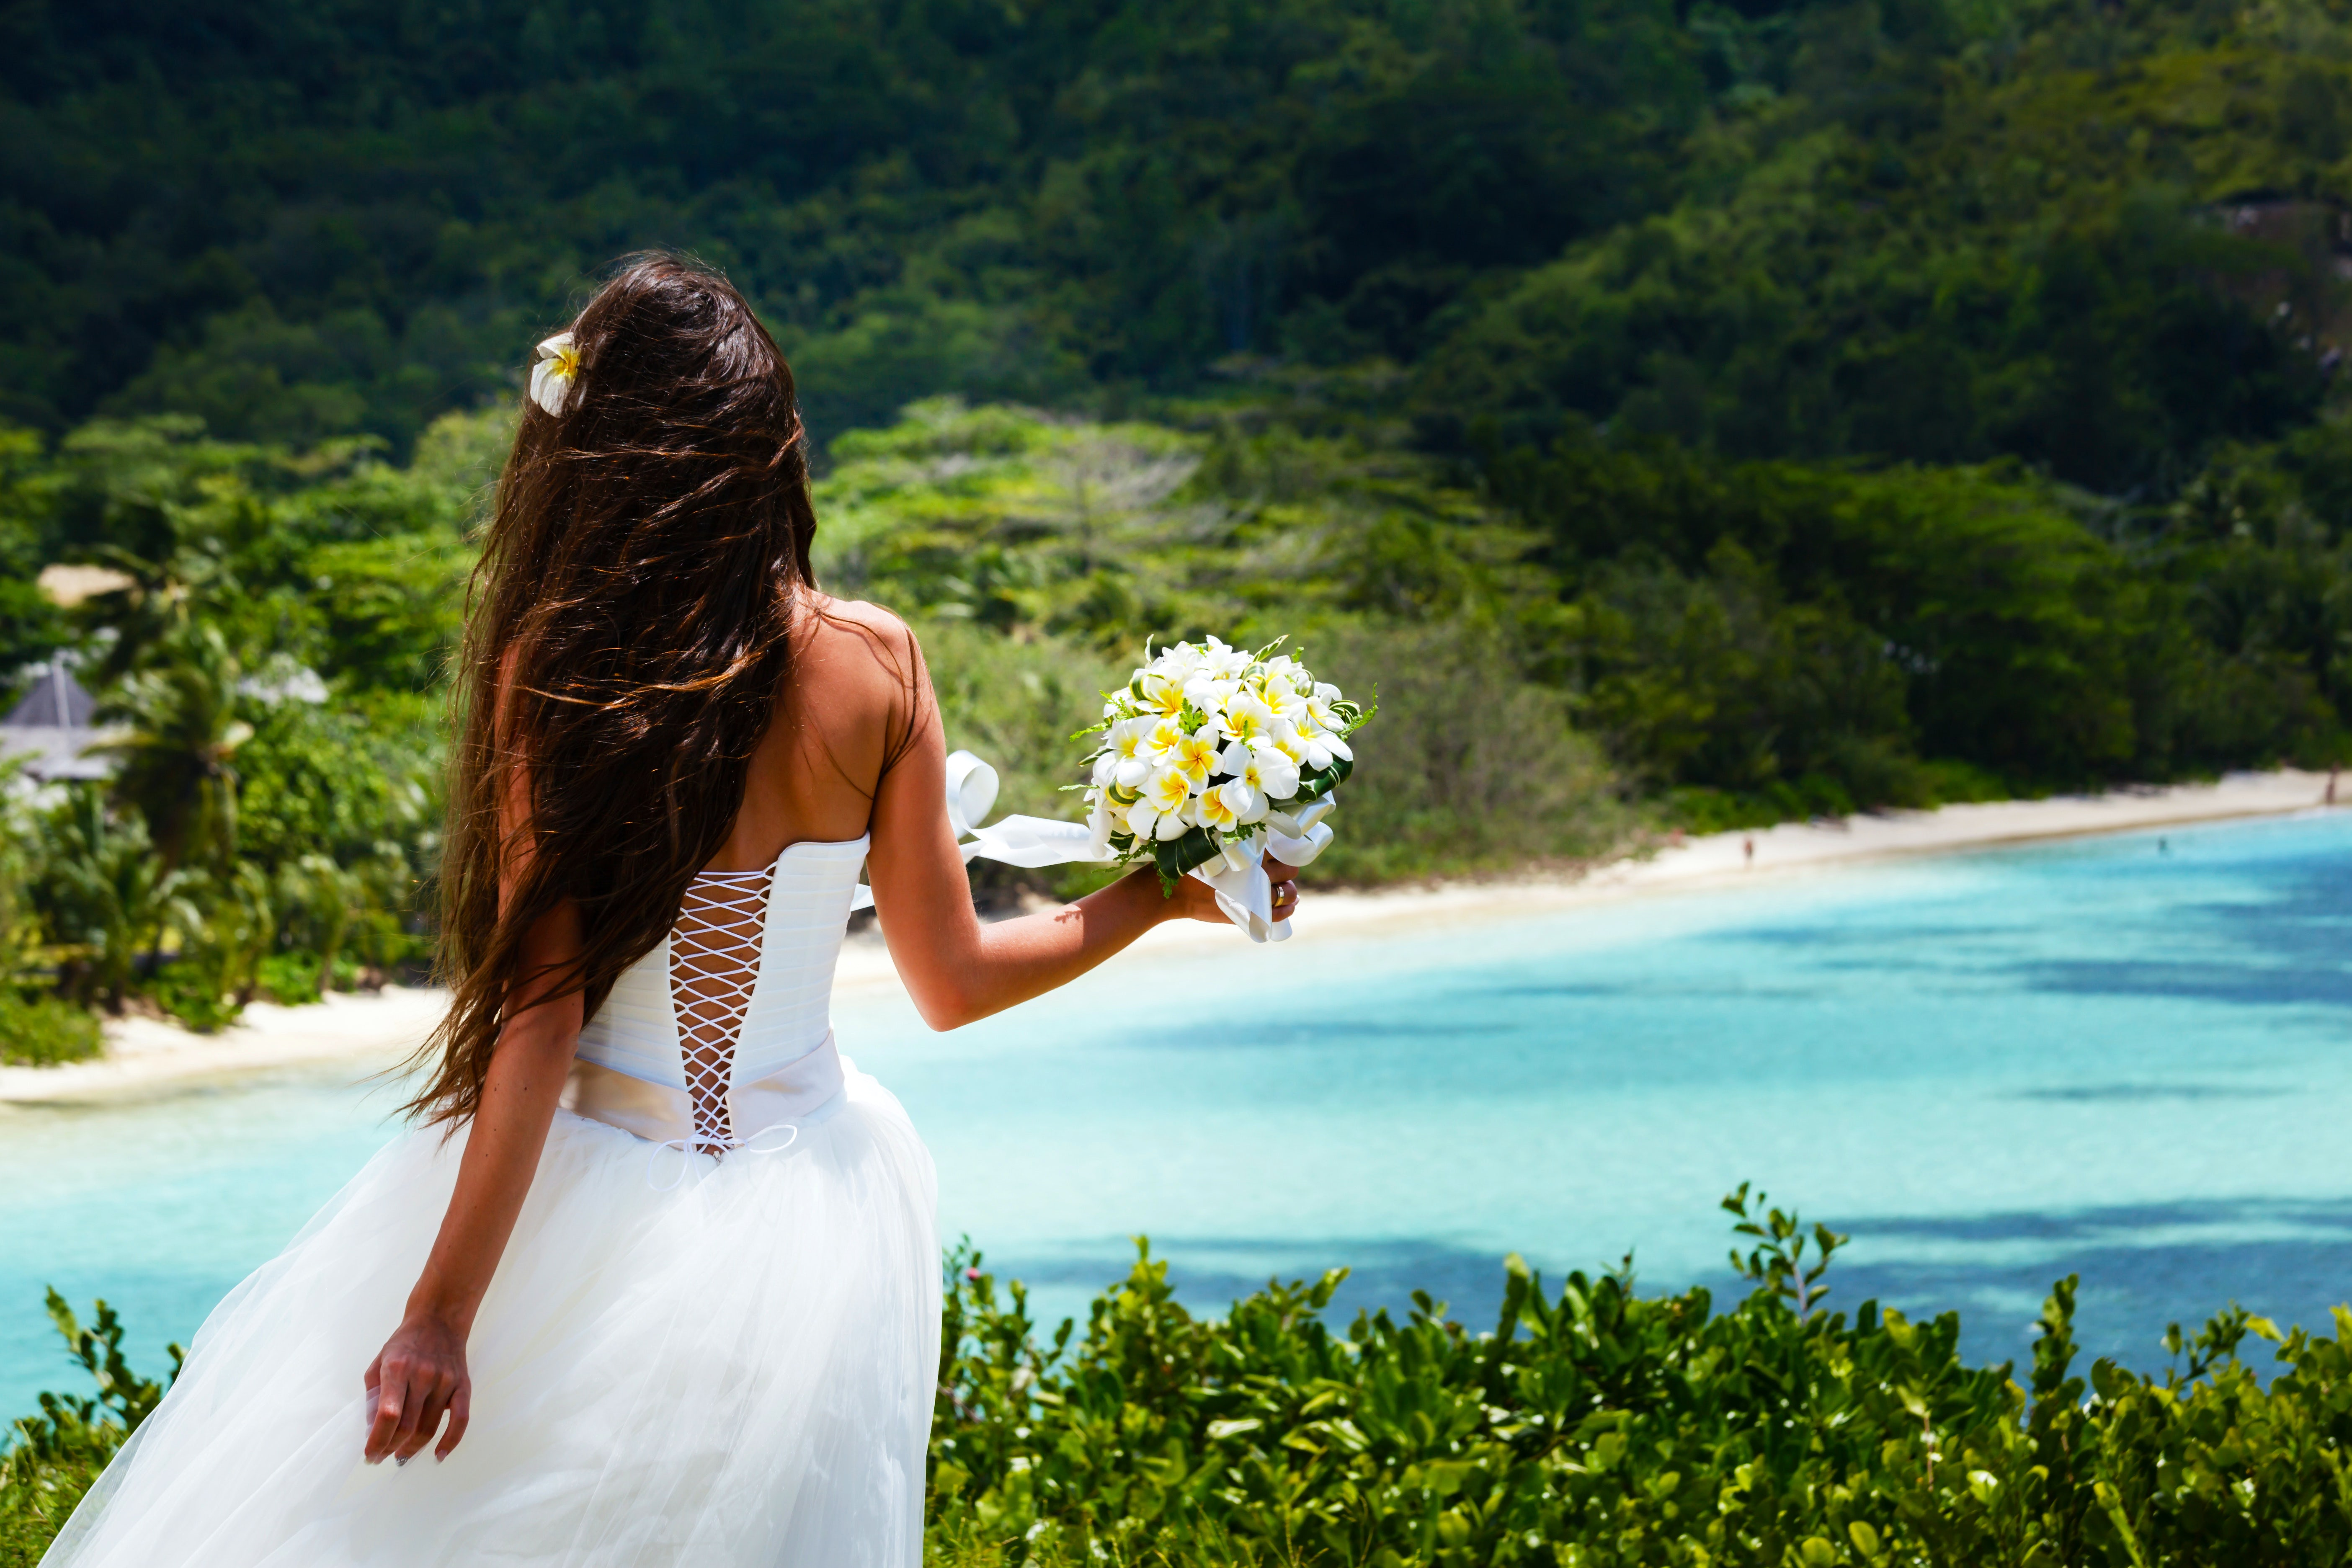 Destination Wedding? Have You Considered Getting Married Overseas?